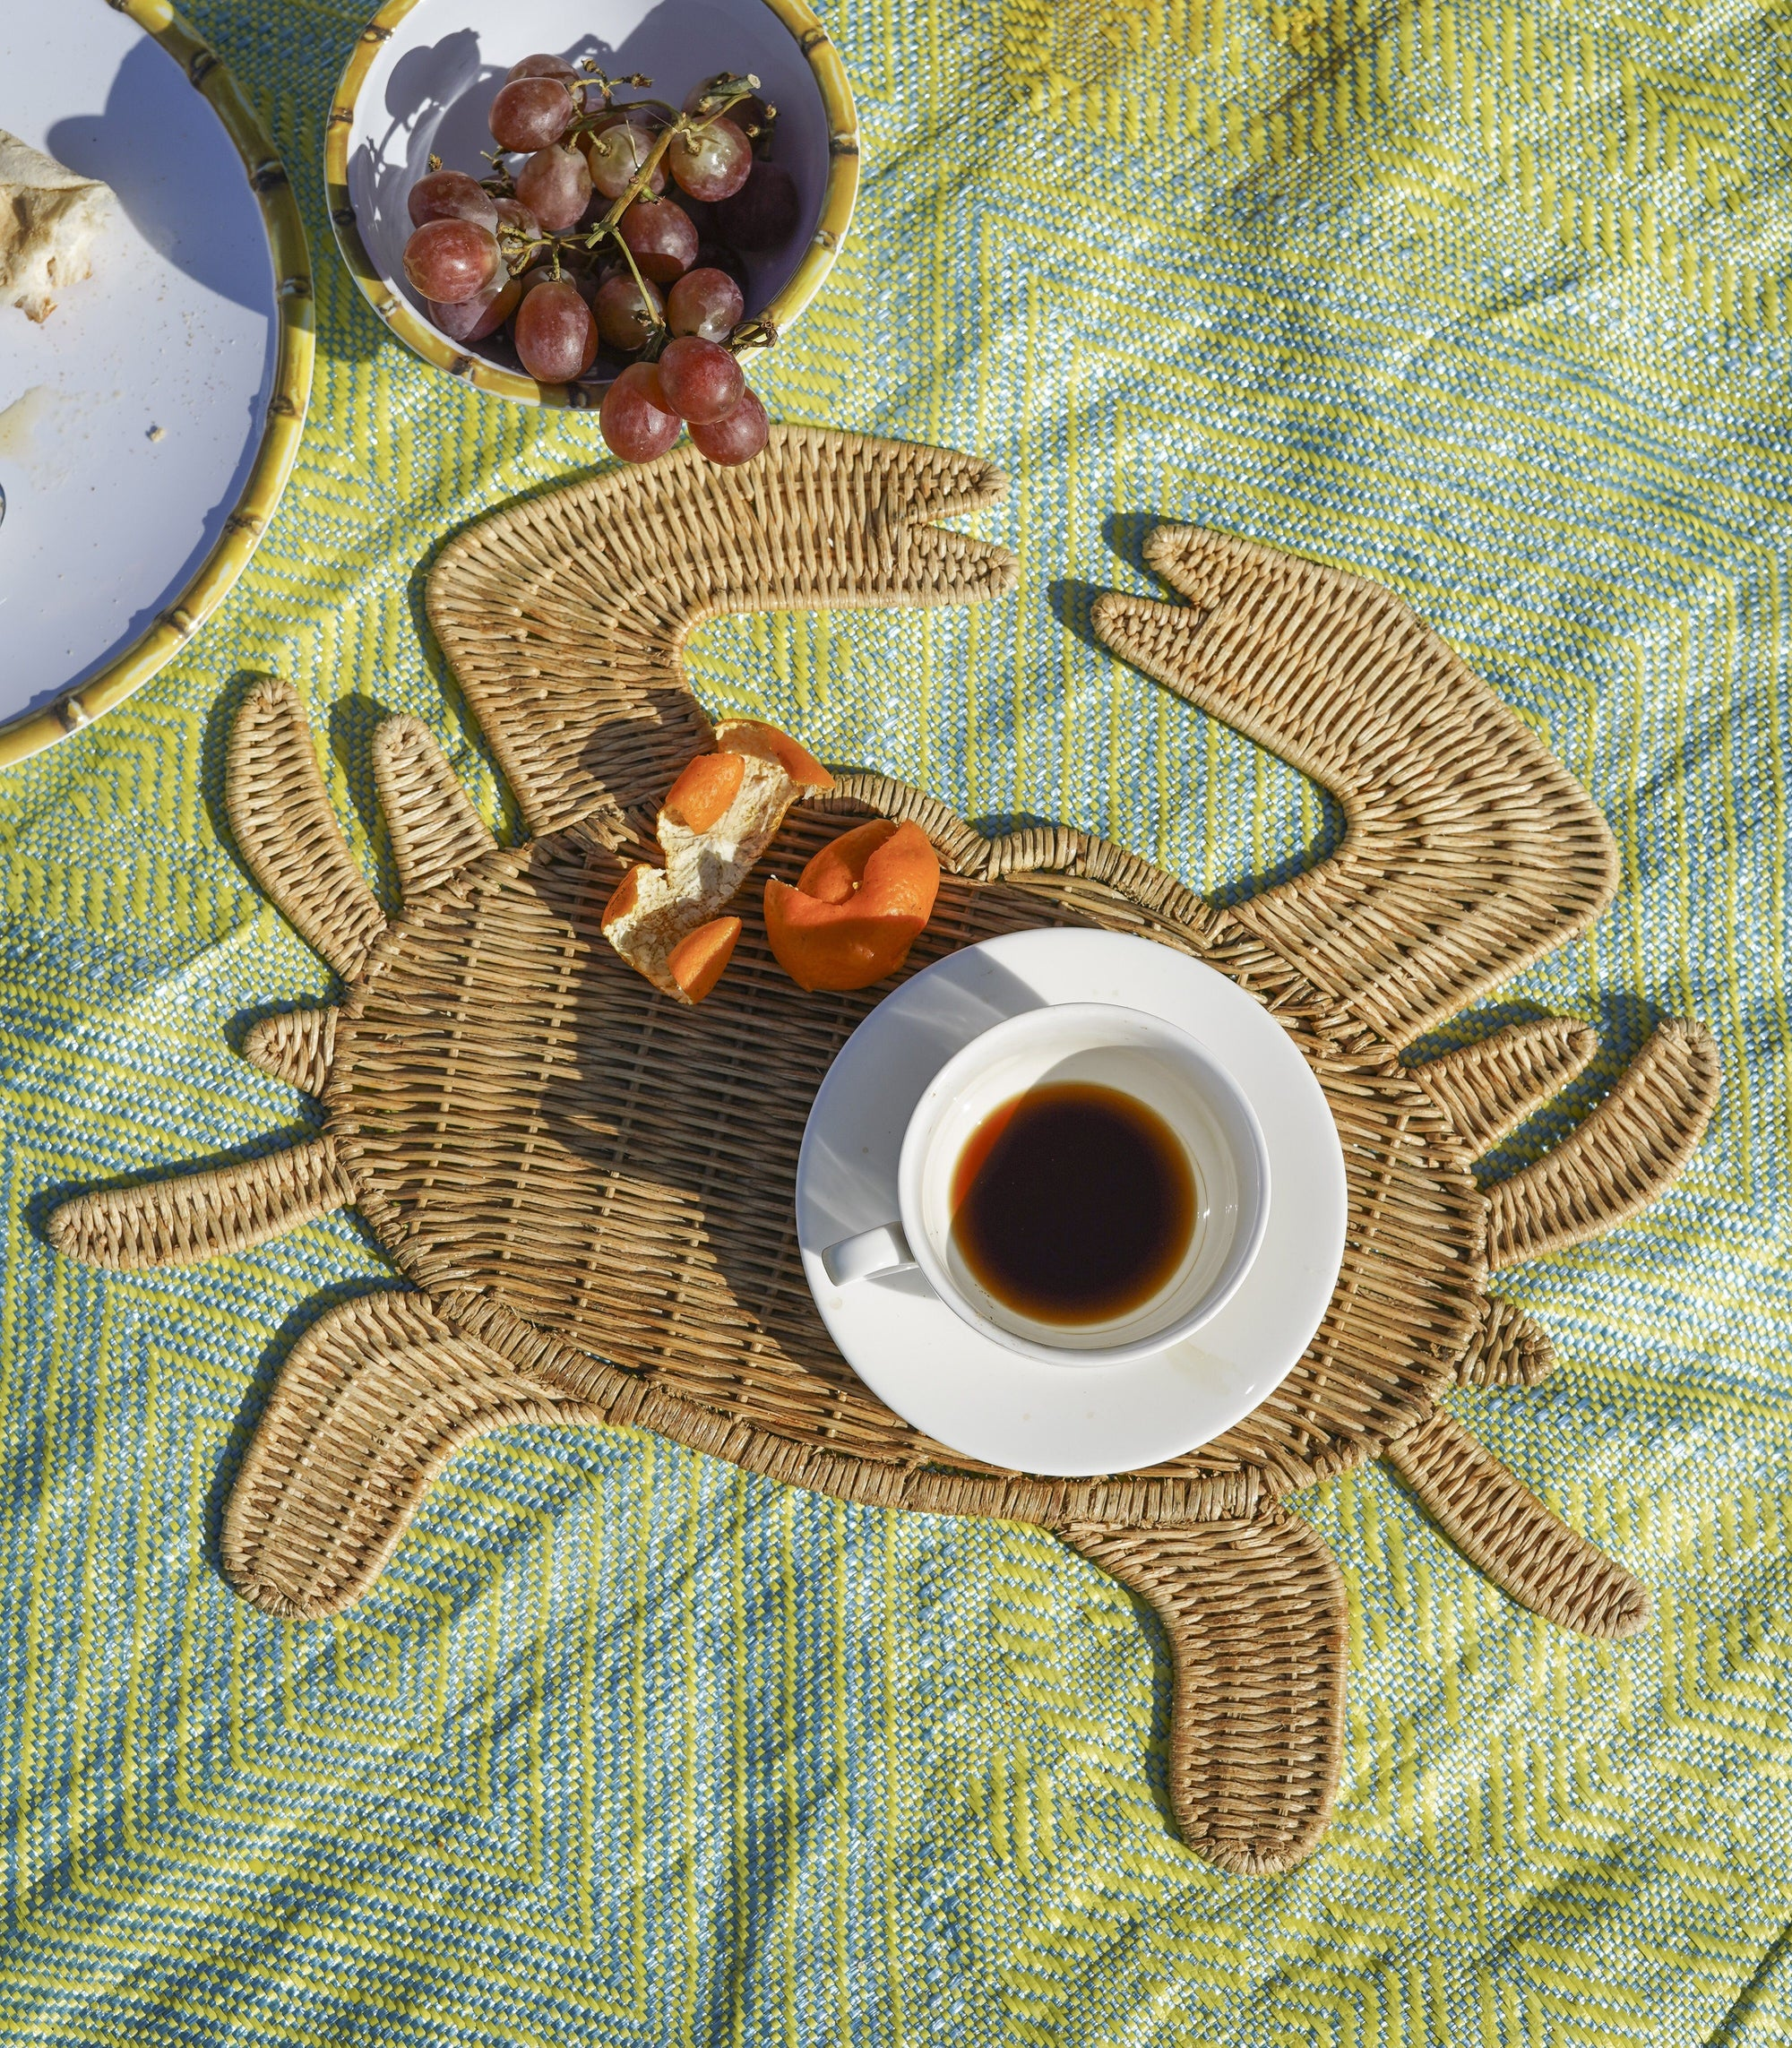 Placemat - Solano Crab Wicker Placemat